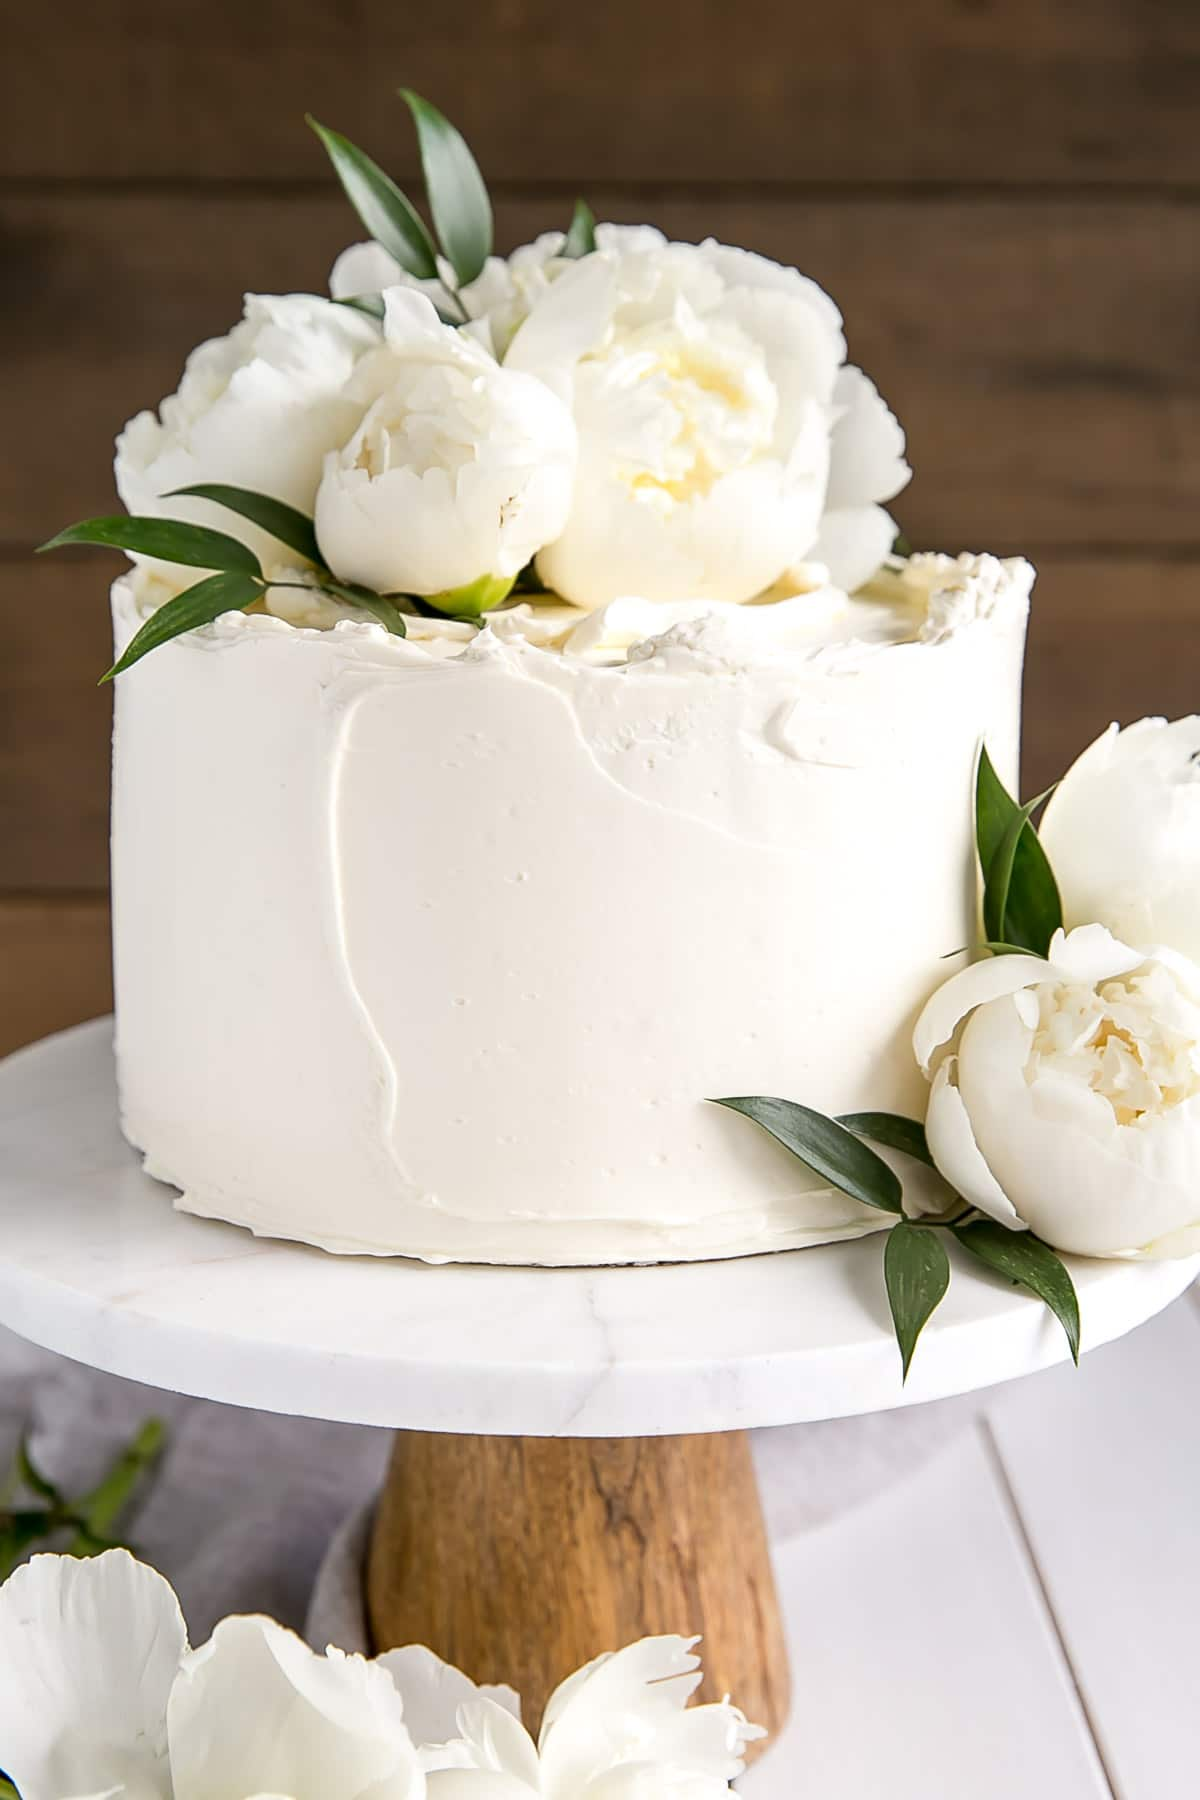 Harry and Meghan's wedding Cake | Royal Wedding Cake Copycat | Lemon Elderflower Cake